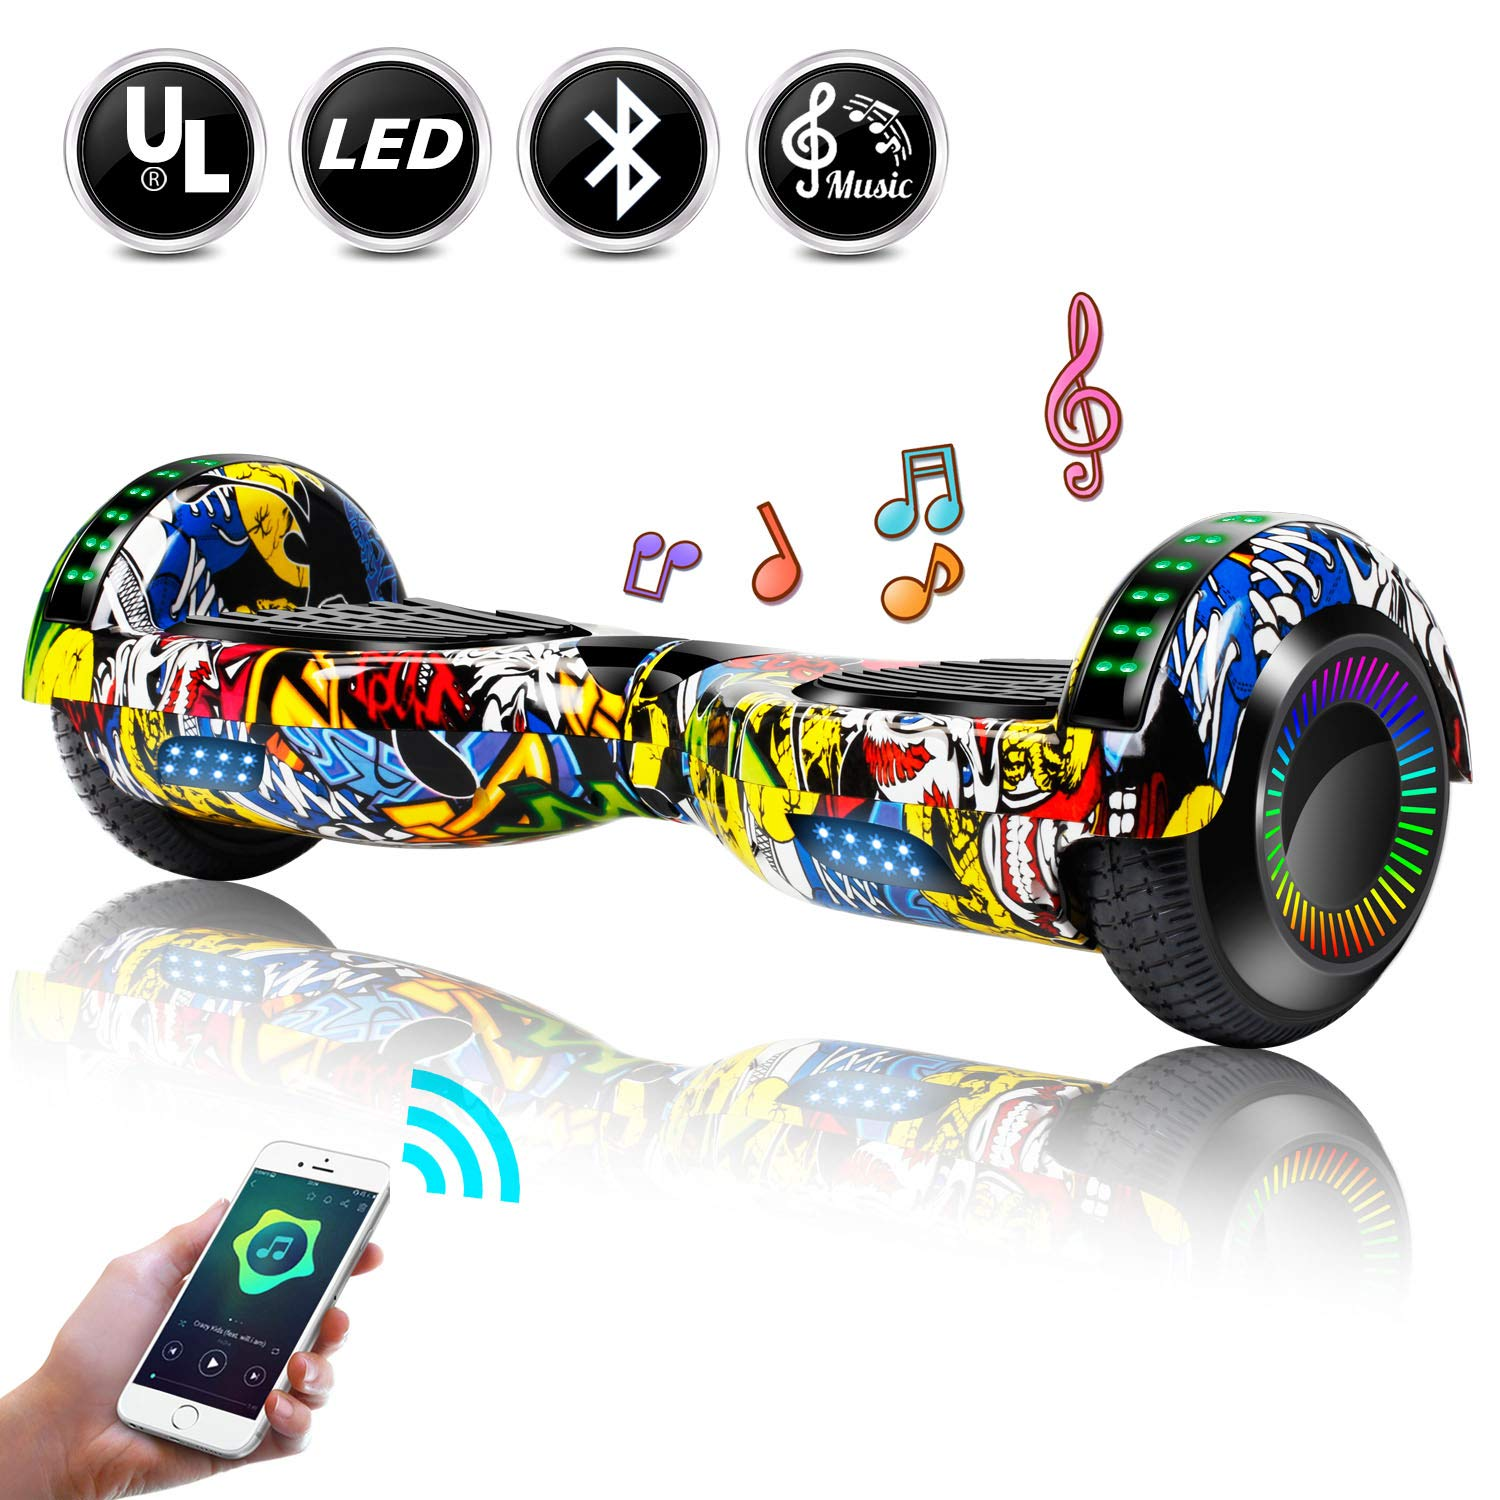 EPCTEK 6.5'' Hoverboard for Kids Adults - UL2272 Certified Self Balancing Hover Board w/Bluetooth Speakers, LED Light